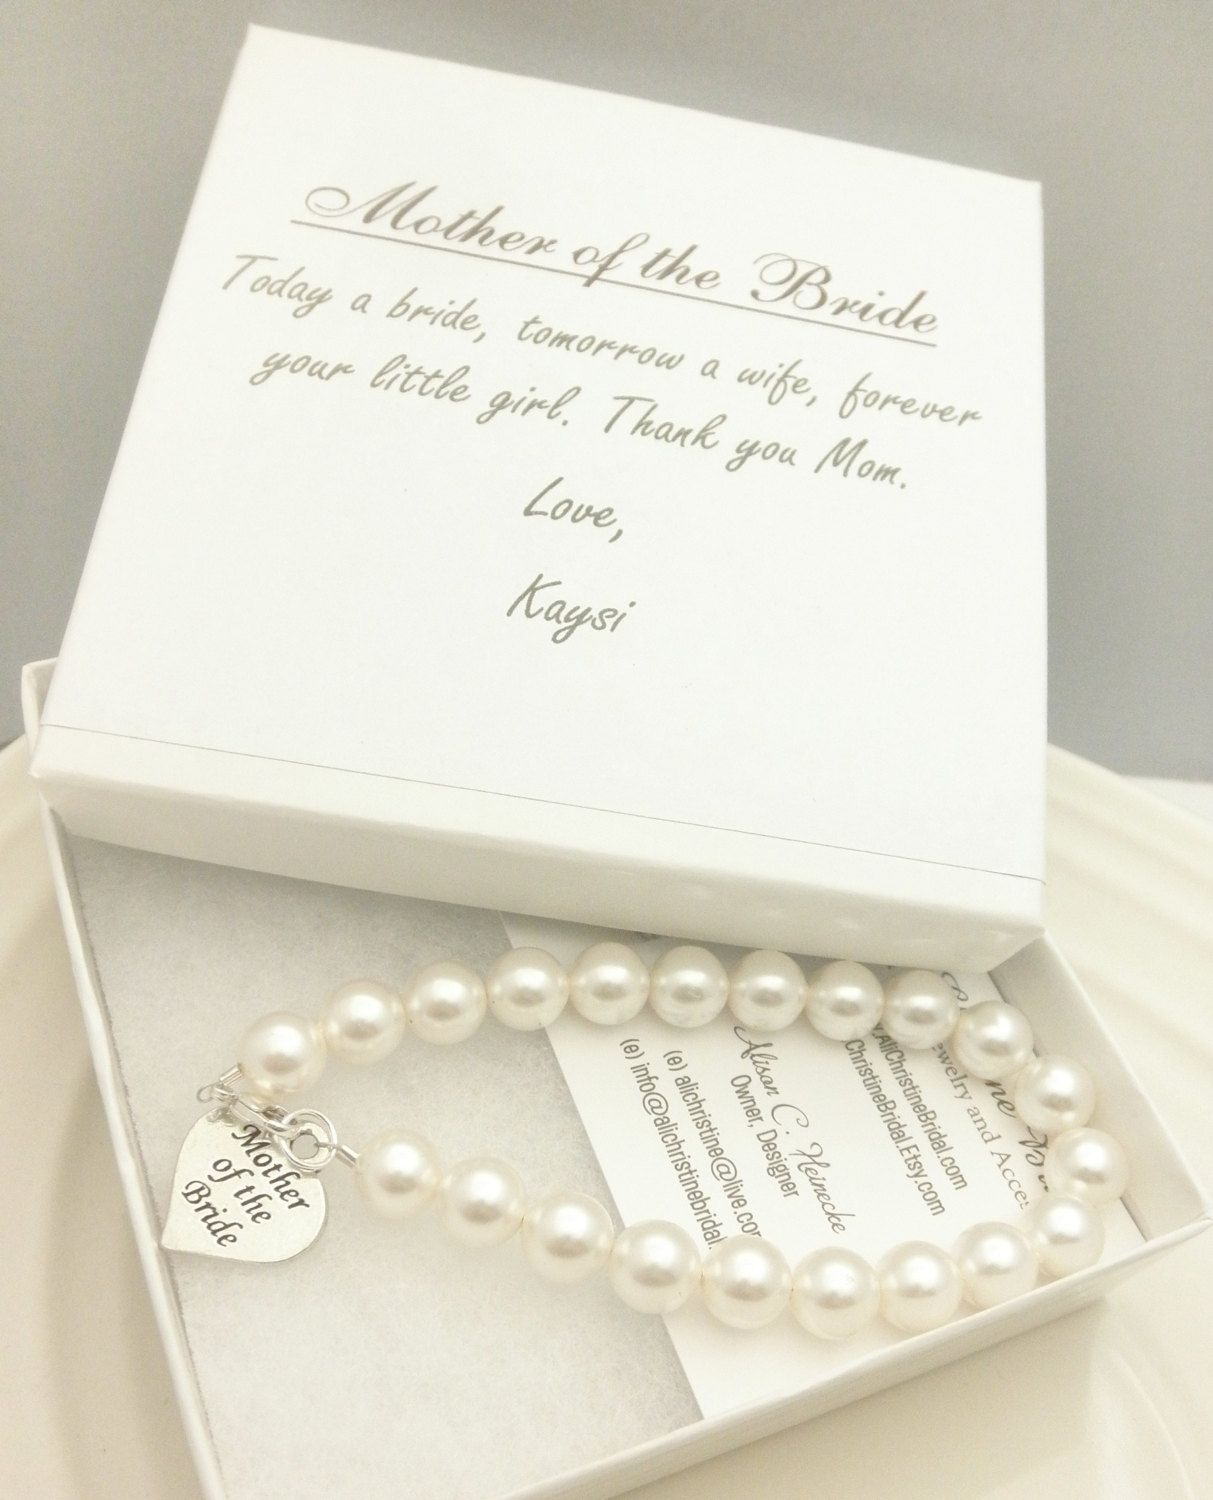 Wedding Gift For The Groom From The Bride: Mother Of The Bride Pearl Strand Bracelet, Mother Of The